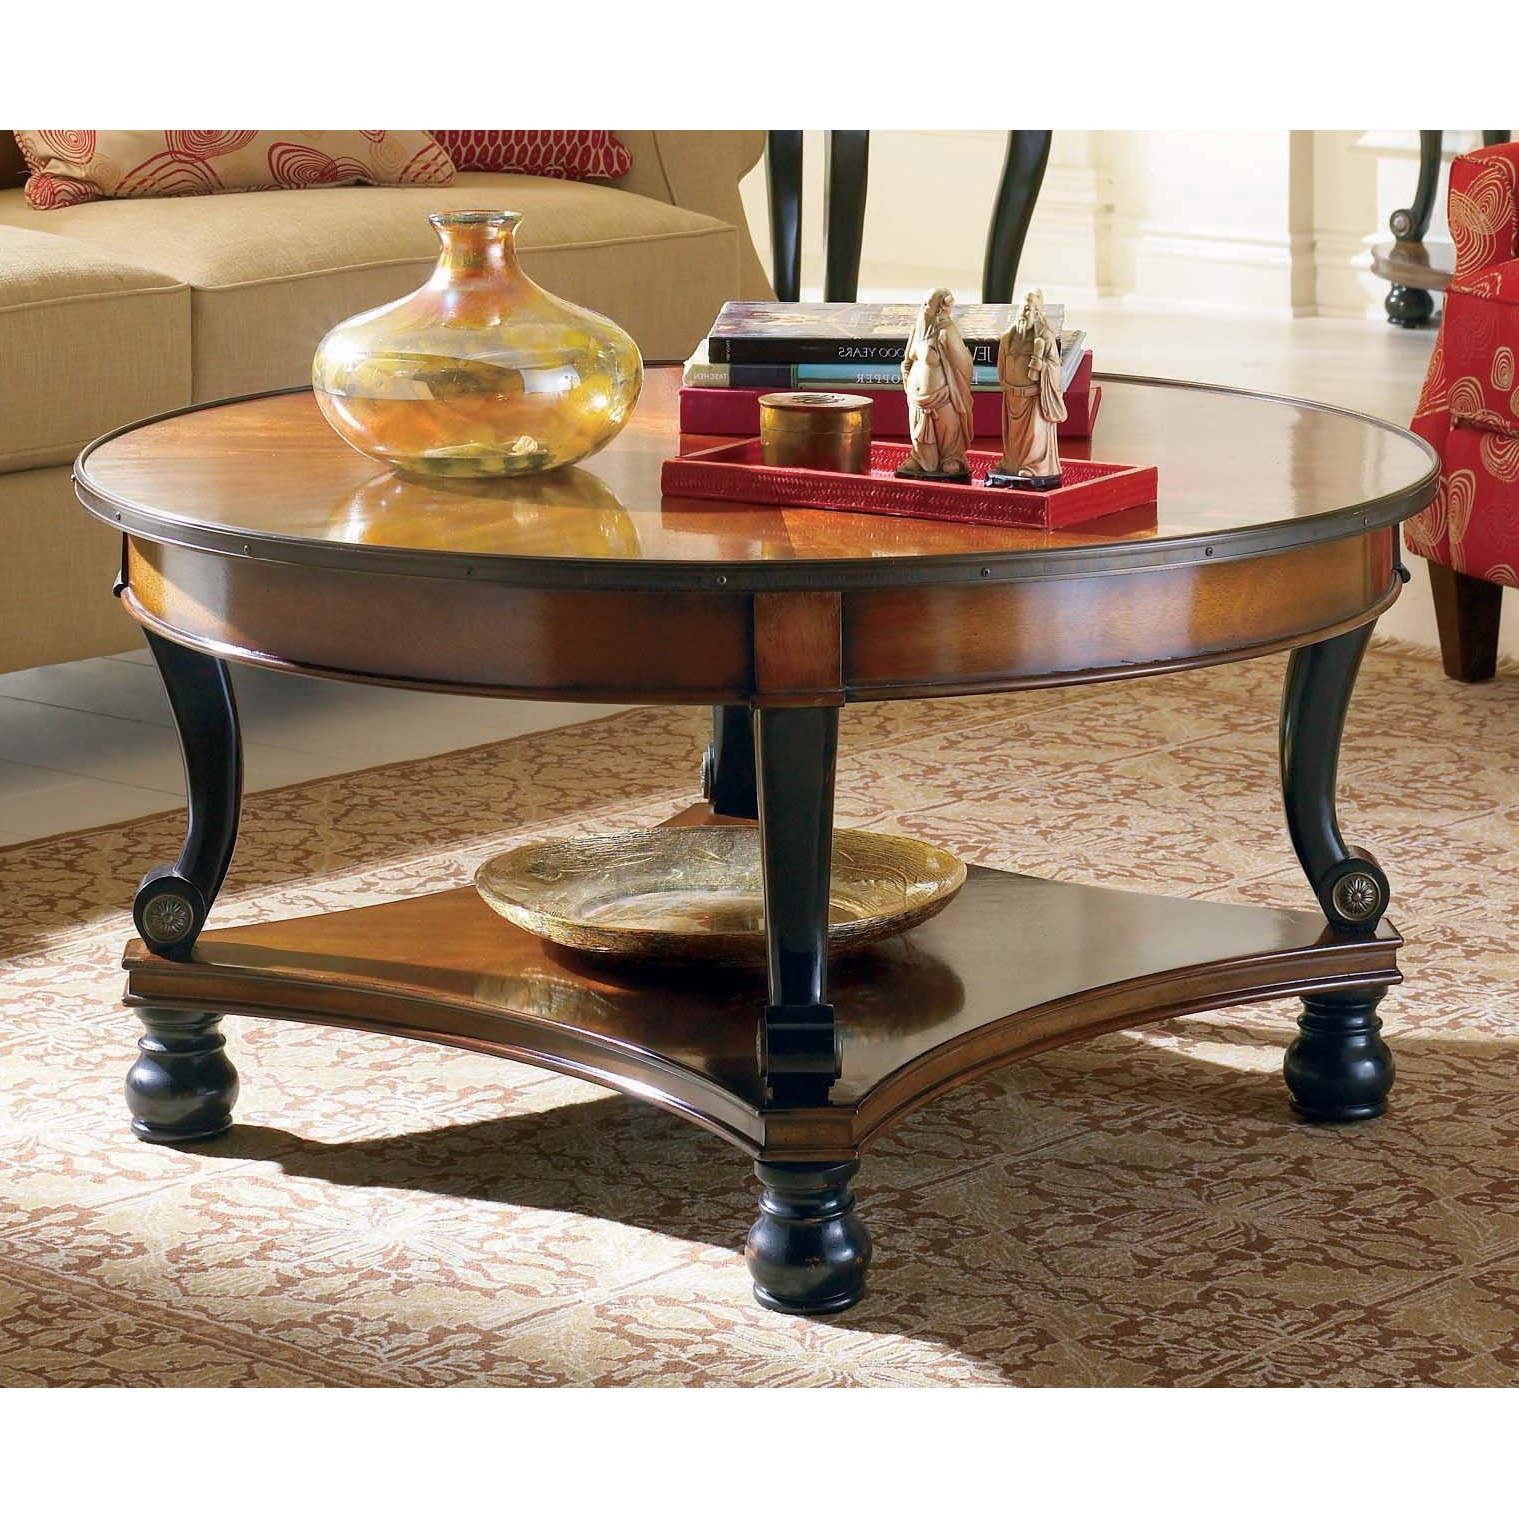 Hooker Furniture Prescott Round Cocktail Table – 453 80 112 For 2018 Prescott Cocktail Tables (View 4 of 20)